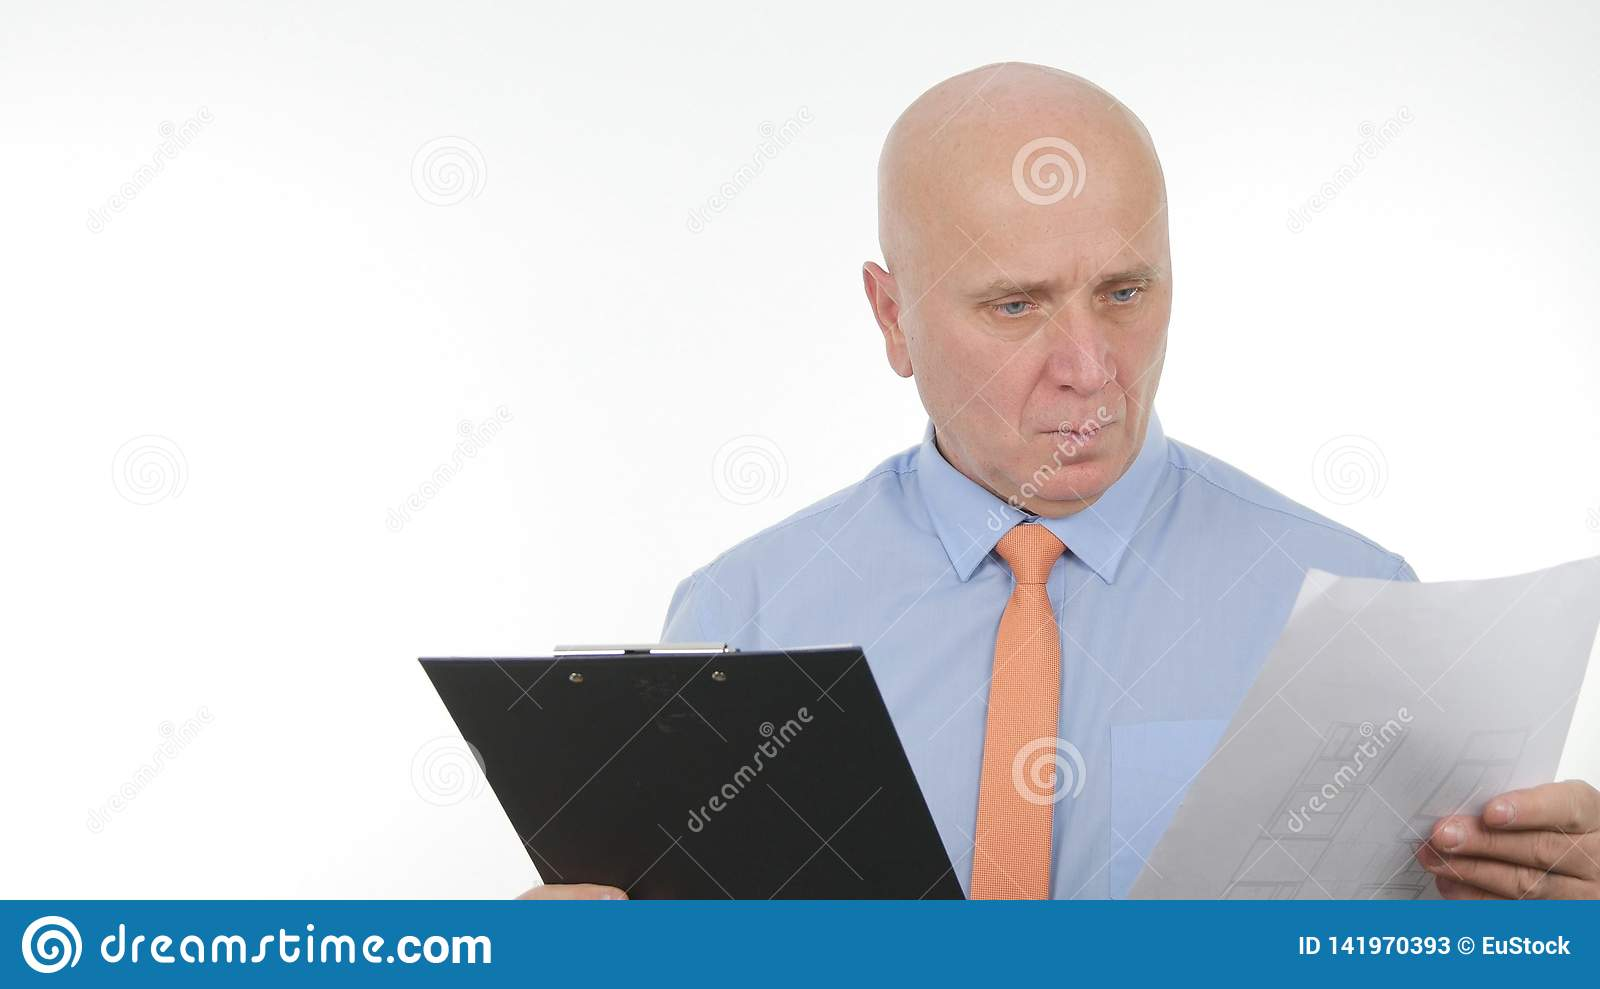 Serious Businessman in Office Room Read and Analyze Financial Documents